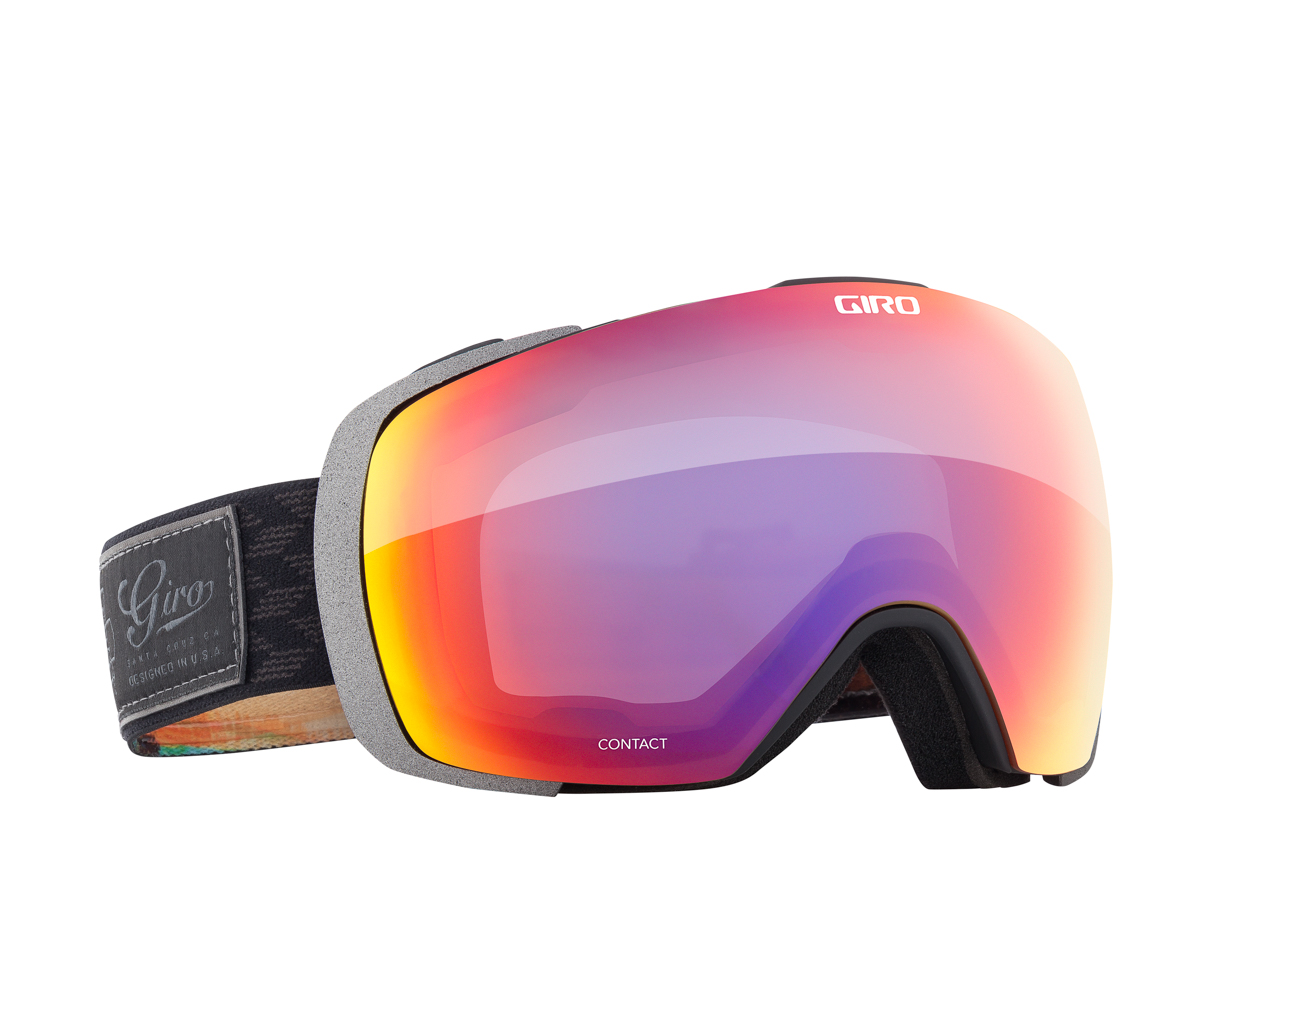 Giro eyewear on solid white background